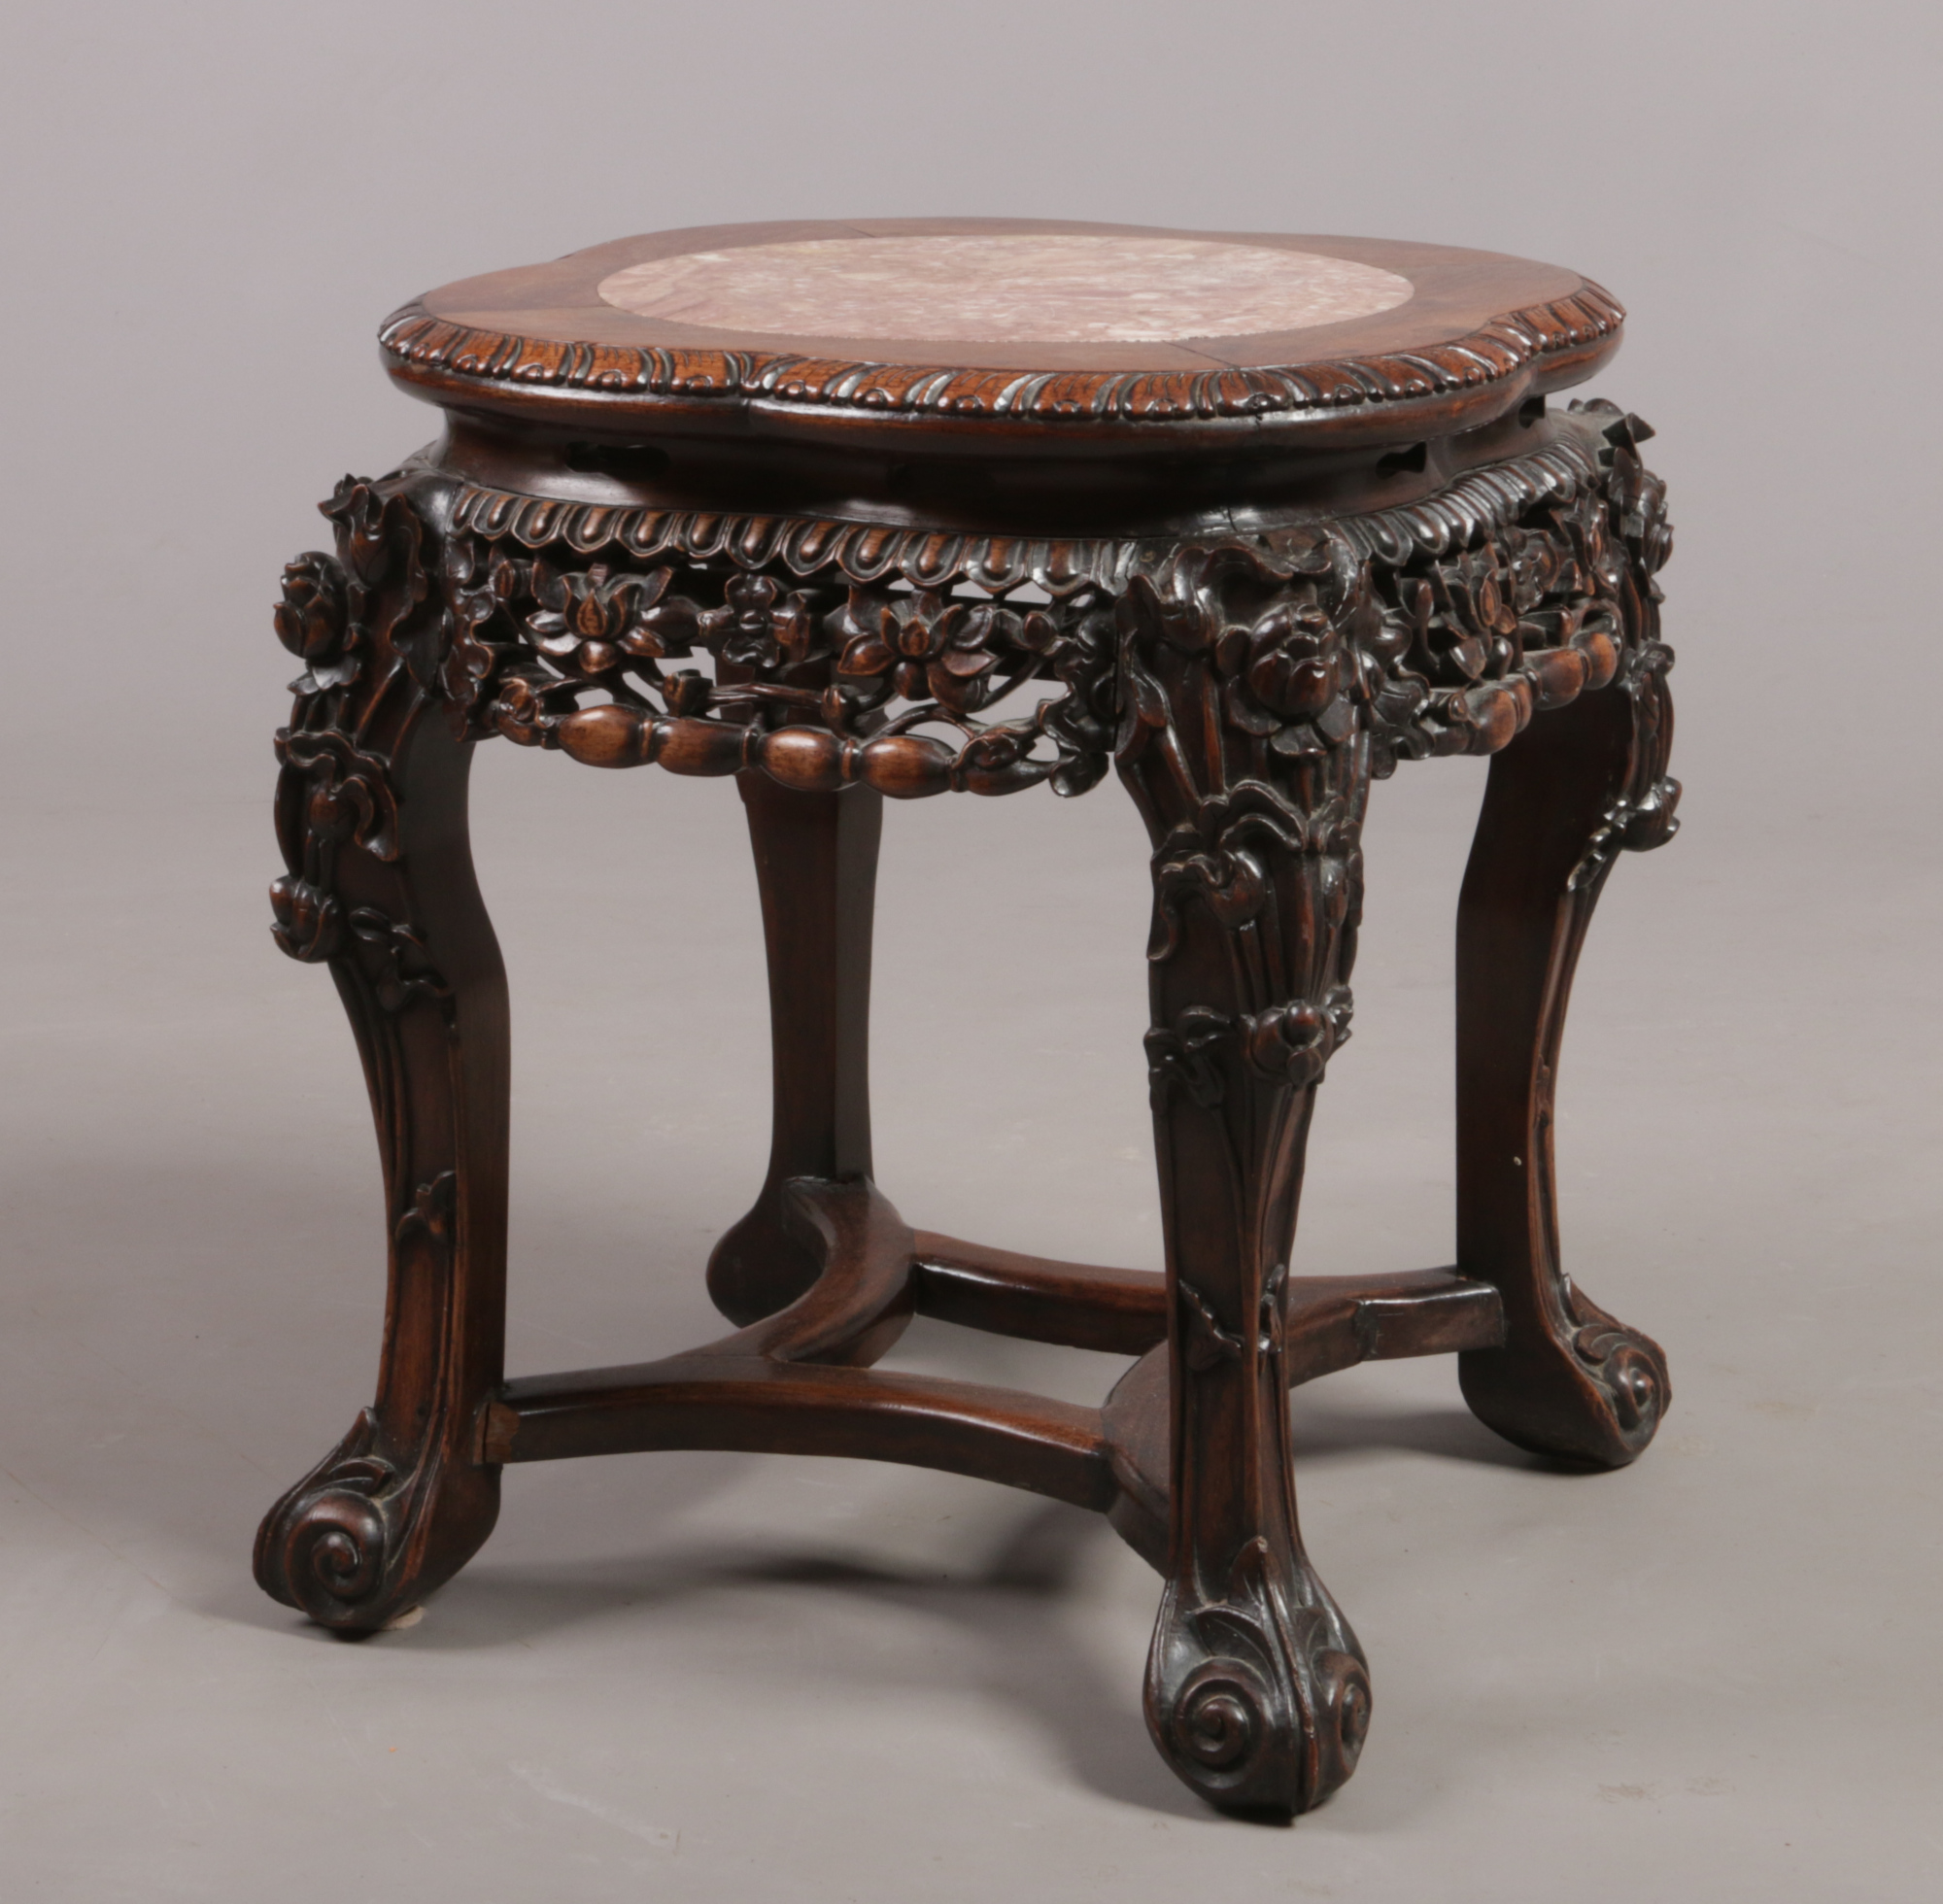 Lot 541 - A 19th century Chinese hardwood and pink marble vase stand. With gadrooned quatrefoil top, foliate